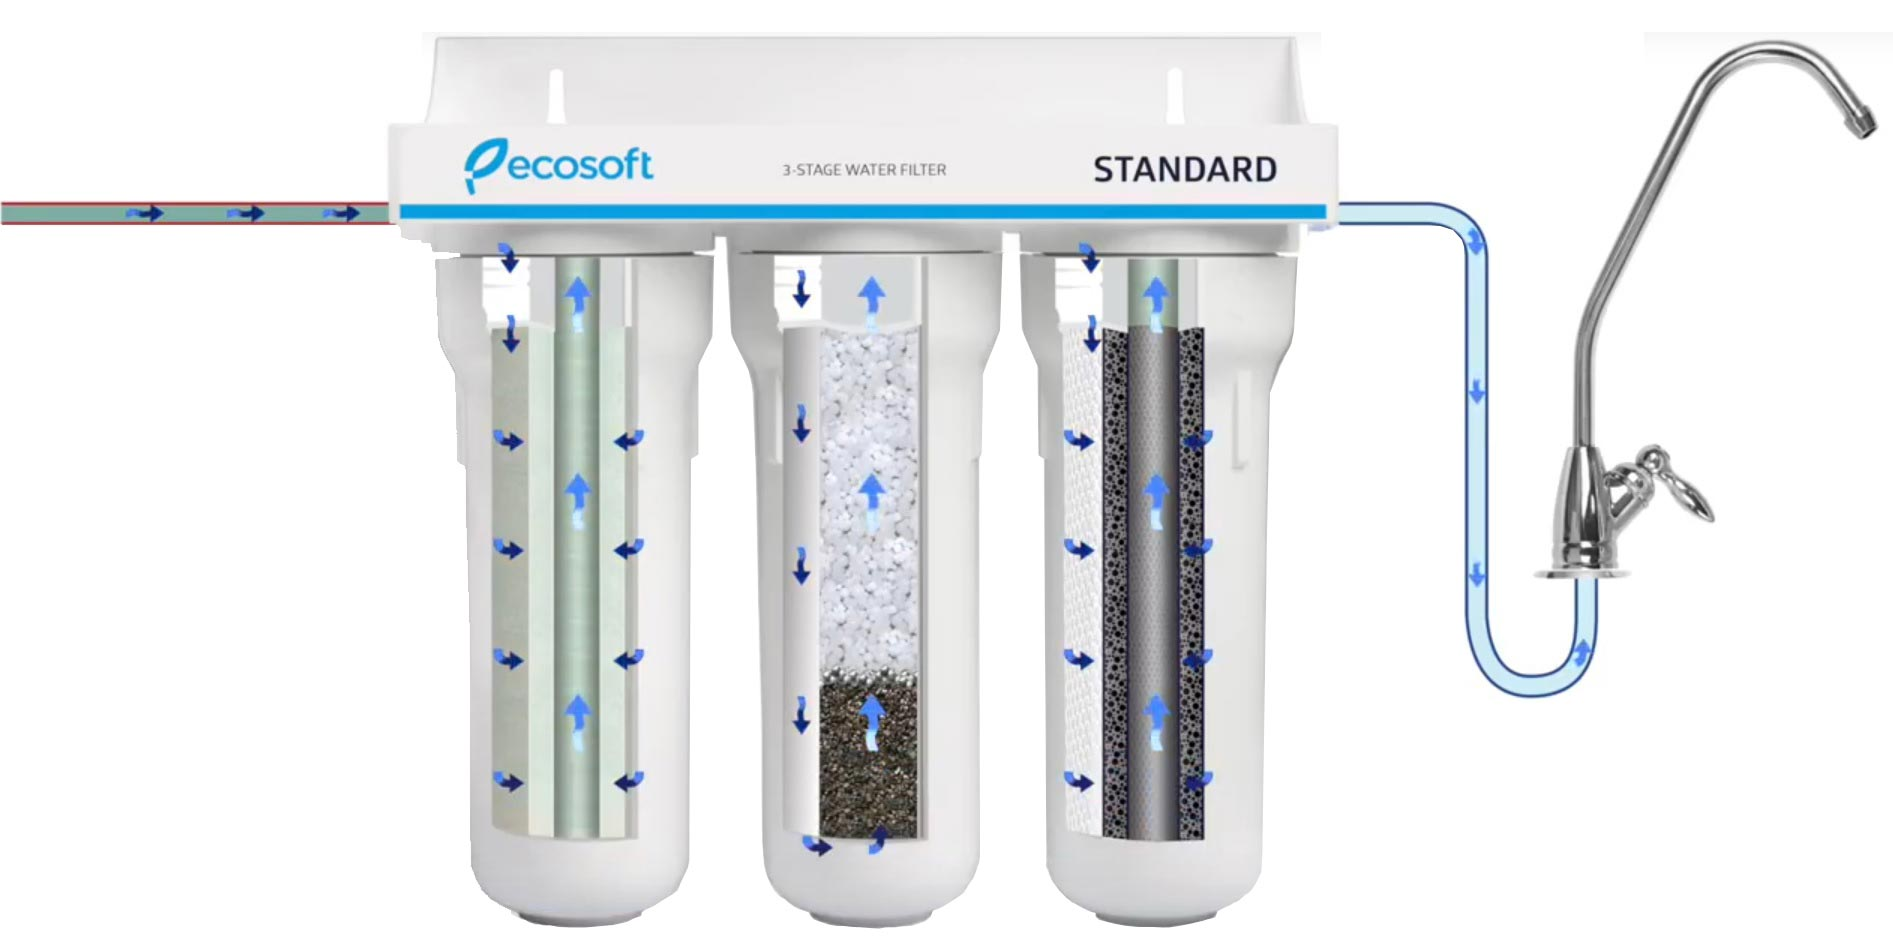 Ecosoft-3-stage-water-filter-system-2